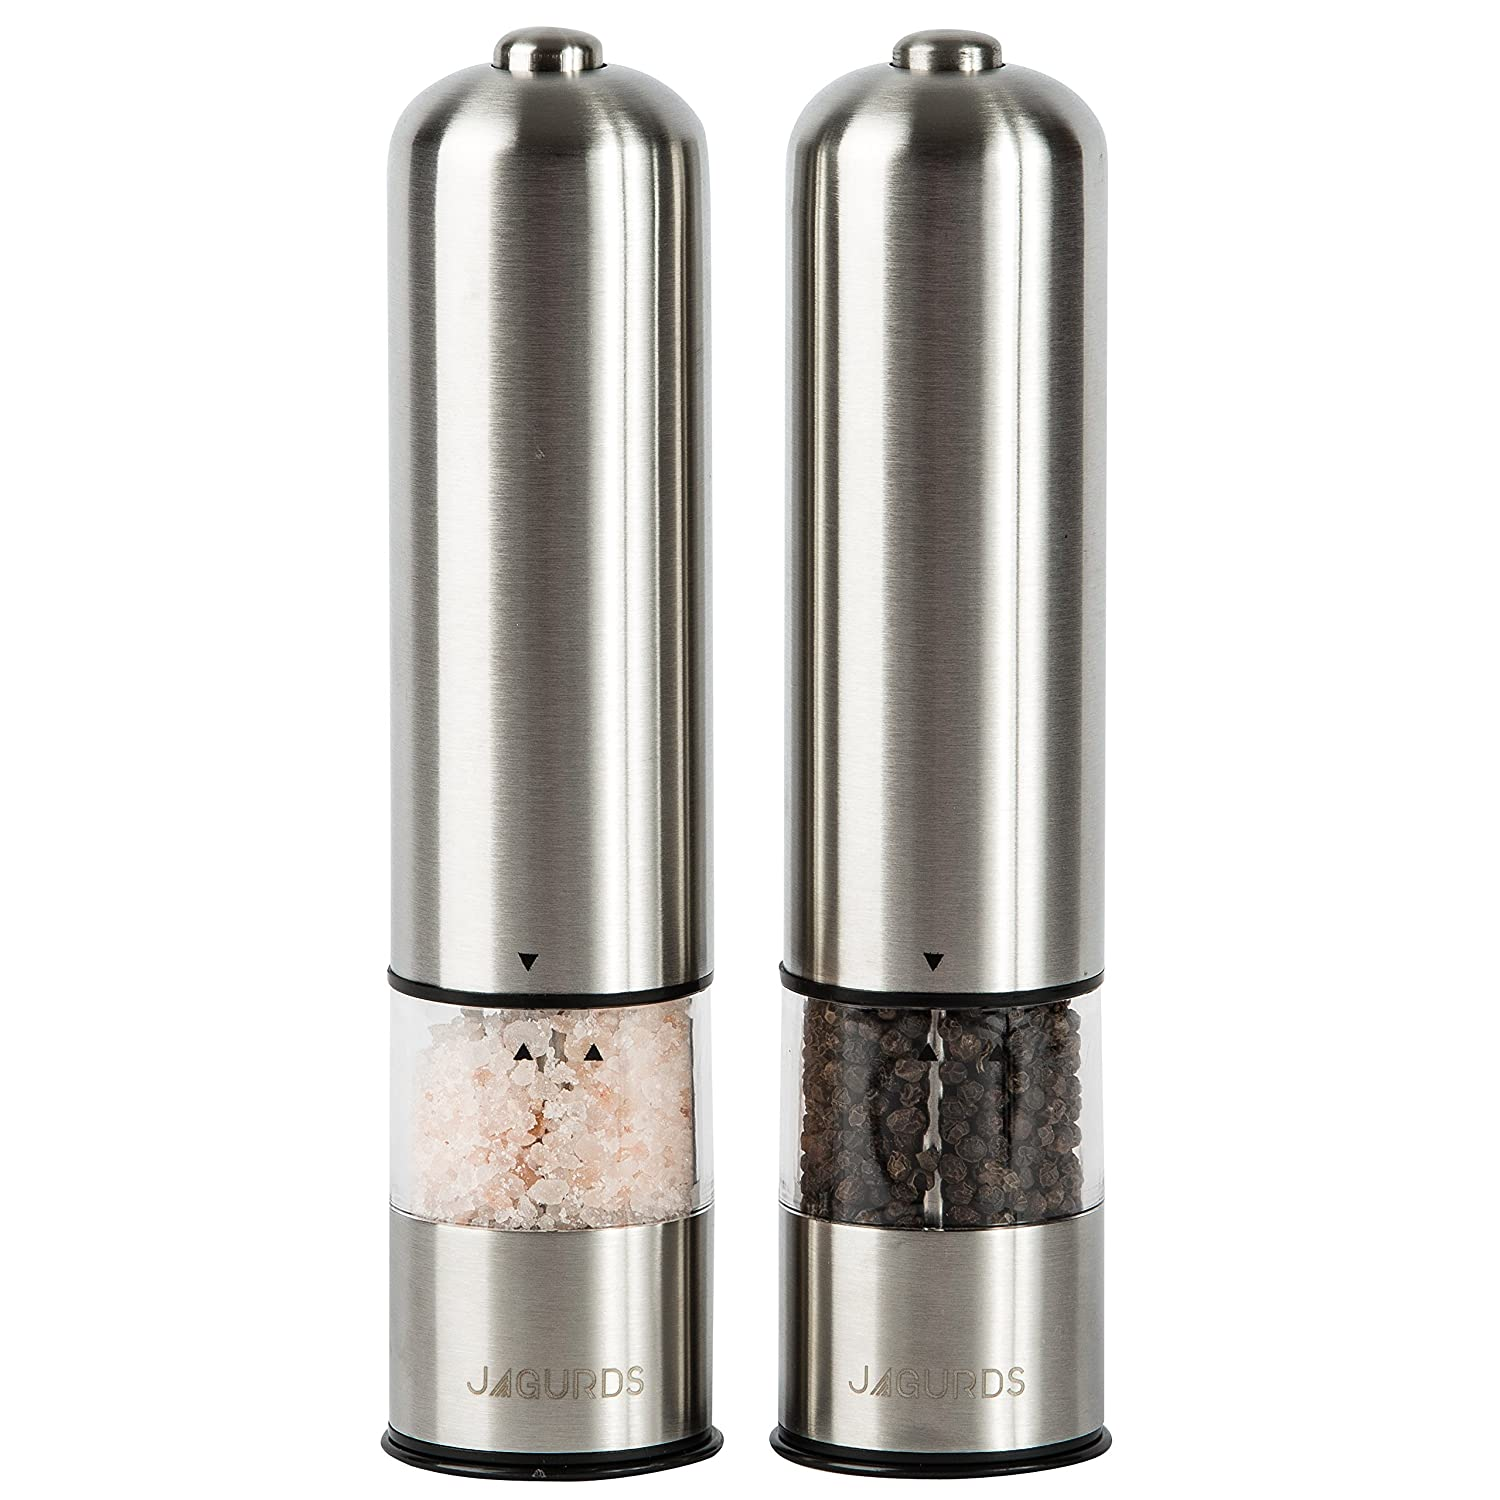 Jagurds Electric Salt and Pepper Mill Set - Premium Stainless Steel One-Handed Spice Grinders with Light, Automatic Battery Operated with Adjustable Coarseness for that Perfect Savory Seasonings